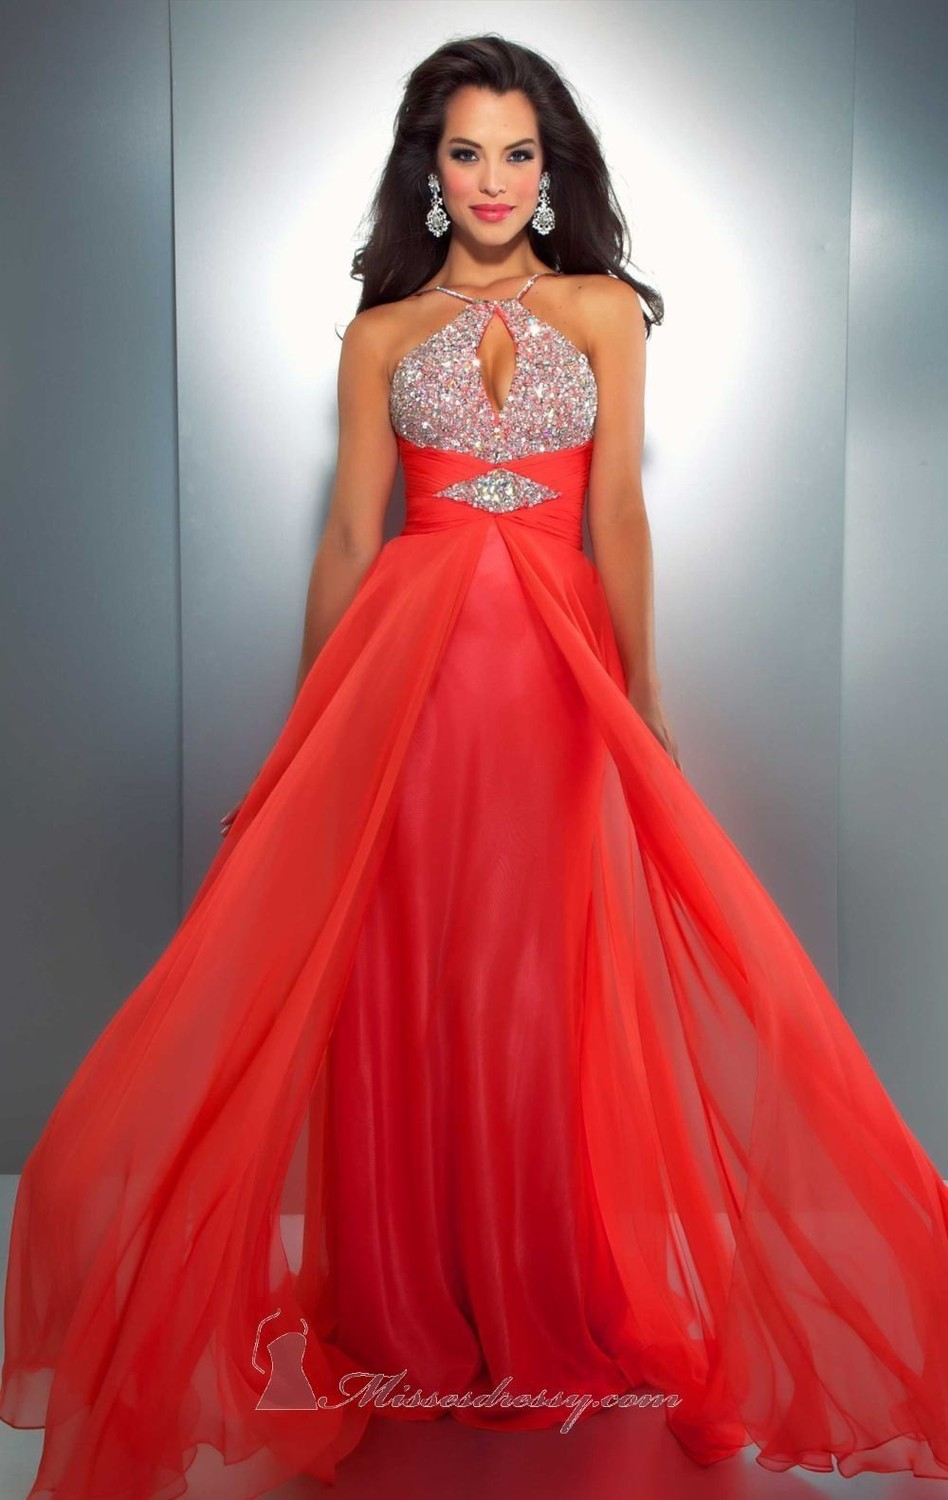 Free Shipping Vestido De Noiva 2018 Sexy Backless Halter Fashion Beaded Chiffon Robe De Soiree Party Formal Prom Gown